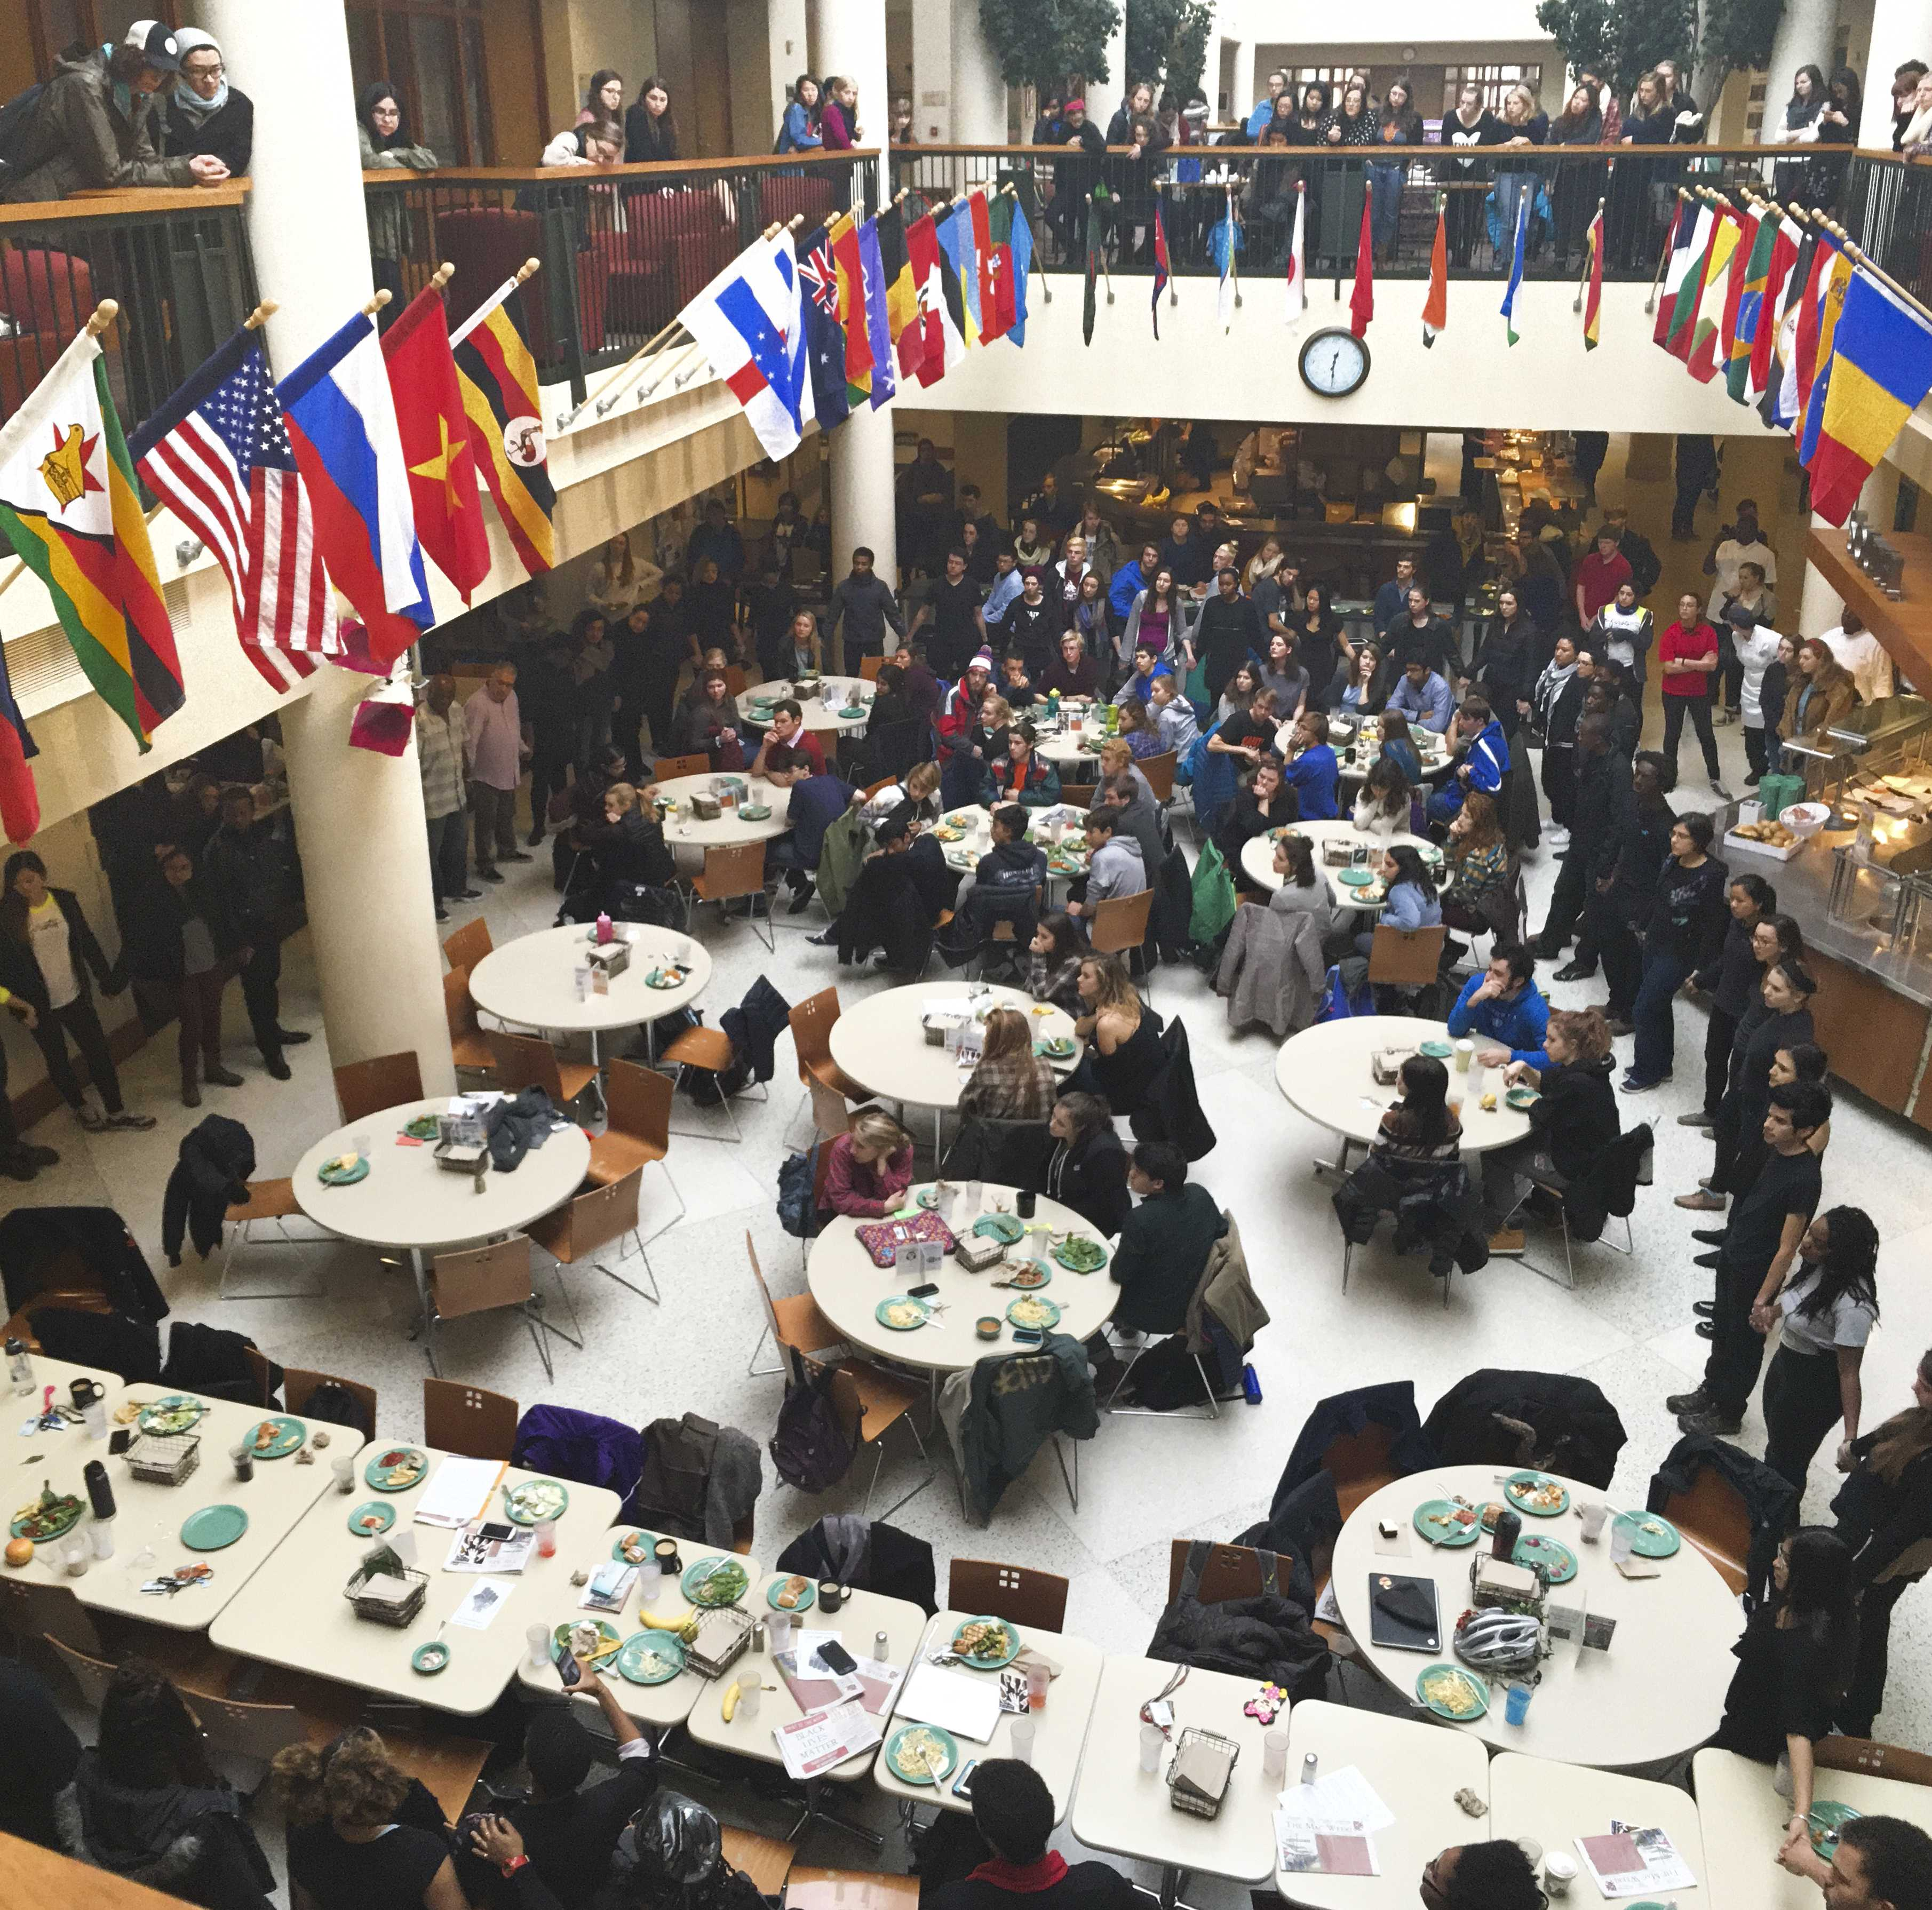 BLAC draws attention to racial injustice through campus demonstrations